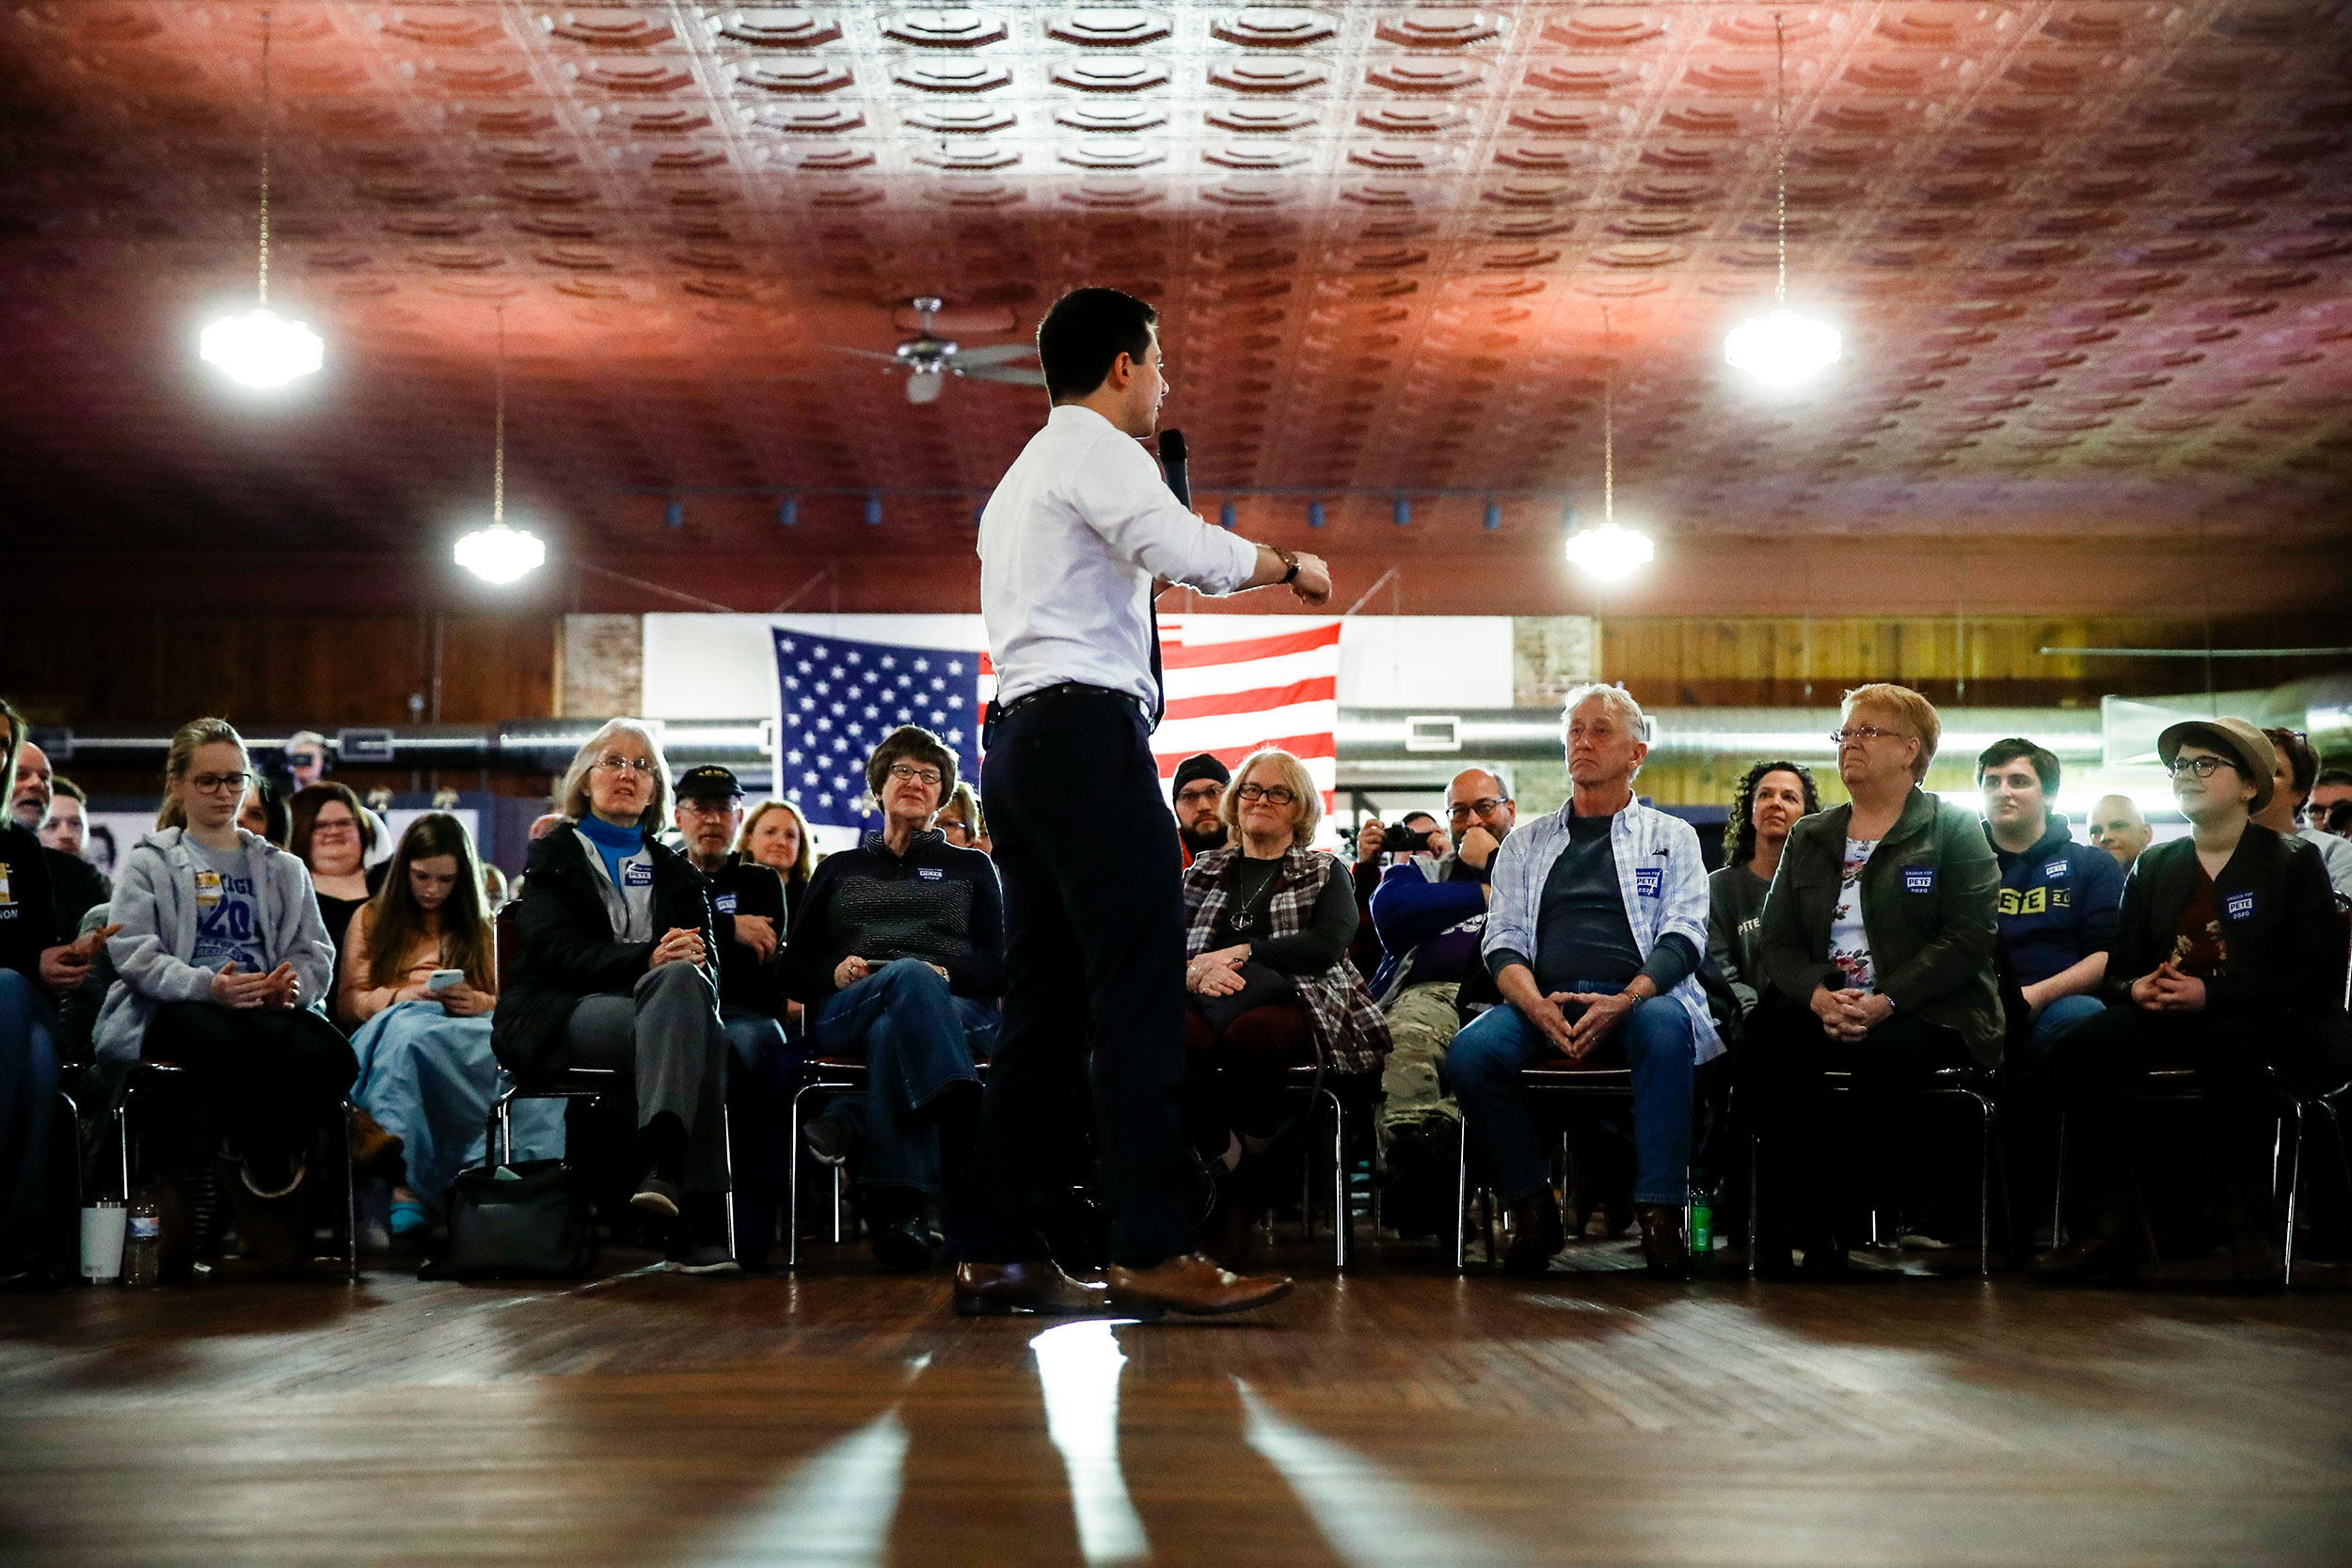 Pete Buttigieg speaks during a campaign event on Saturday.